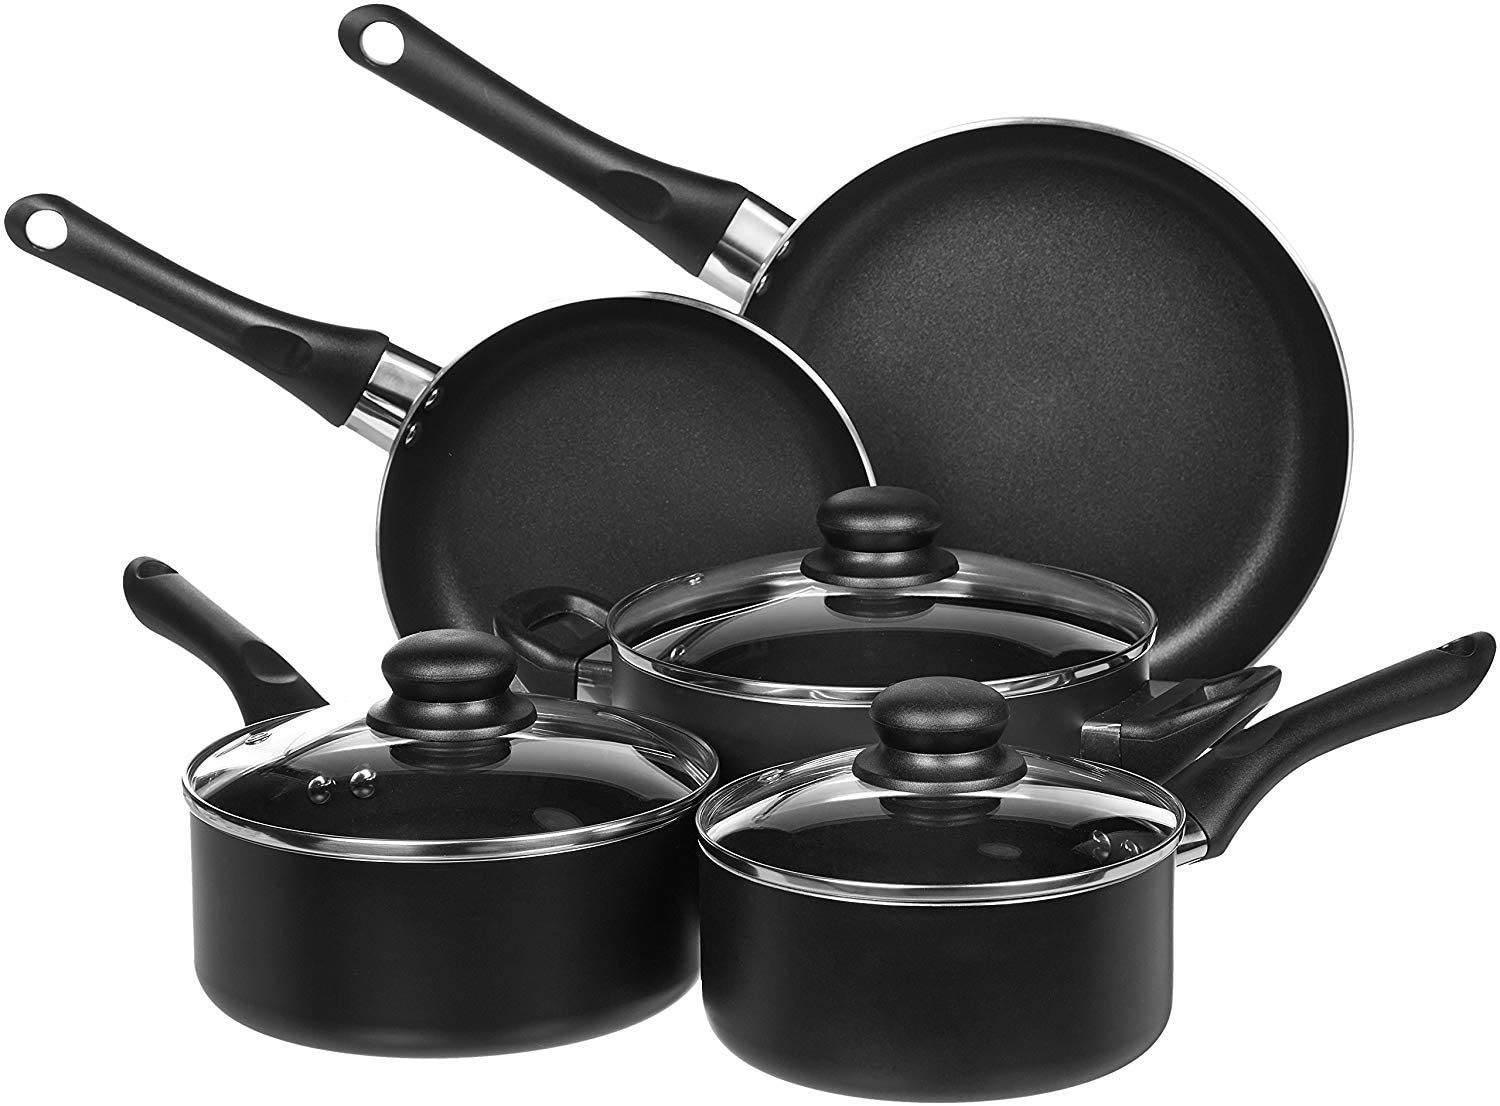 AmazonBasics Nonstick Pot & Cookware Set, 8-Piece